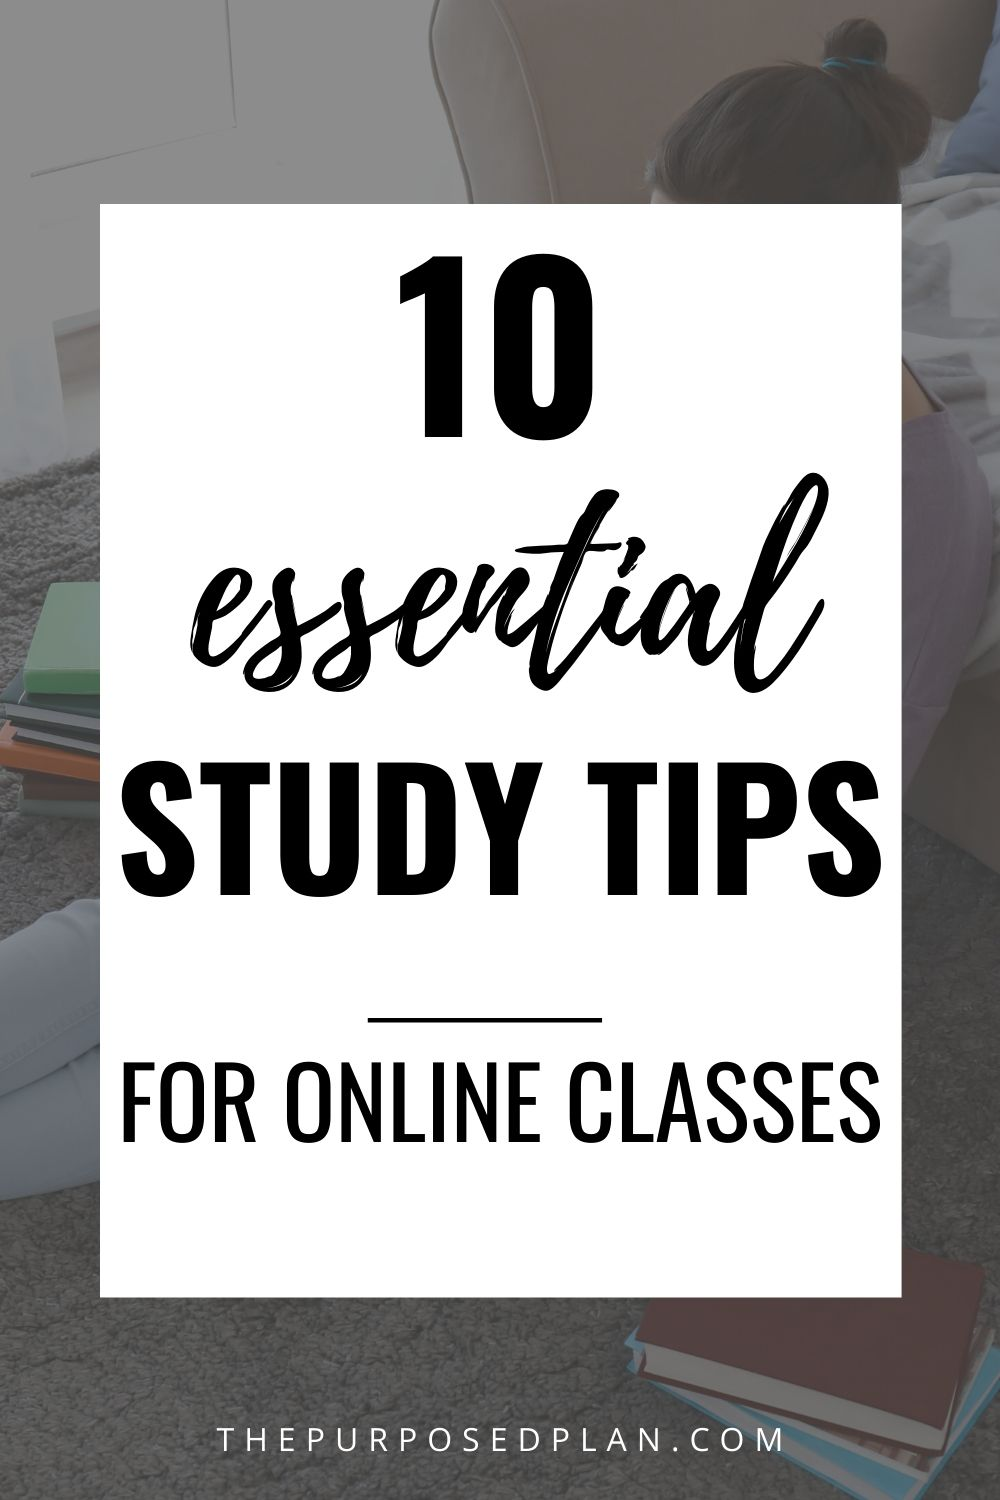 TIPS FOR ONLINE CLASSES